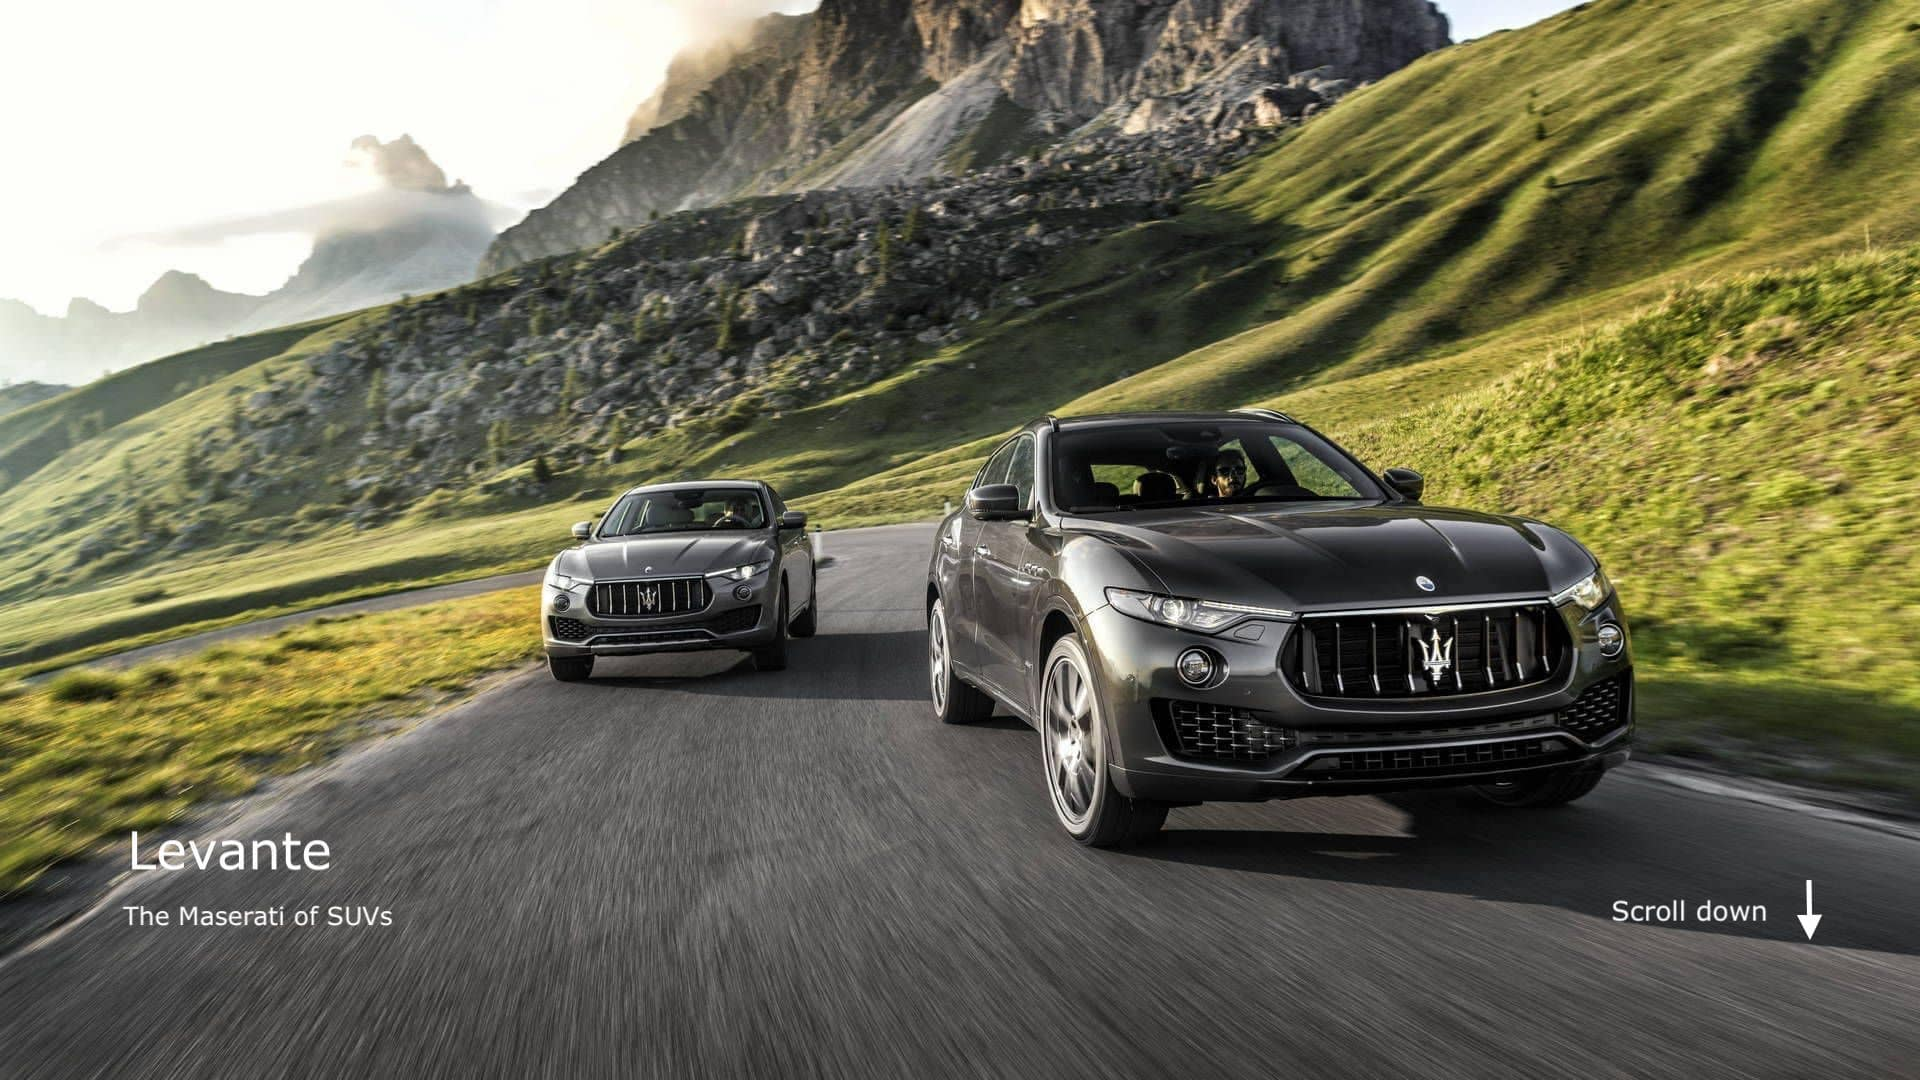 First Look - Maserati SUV